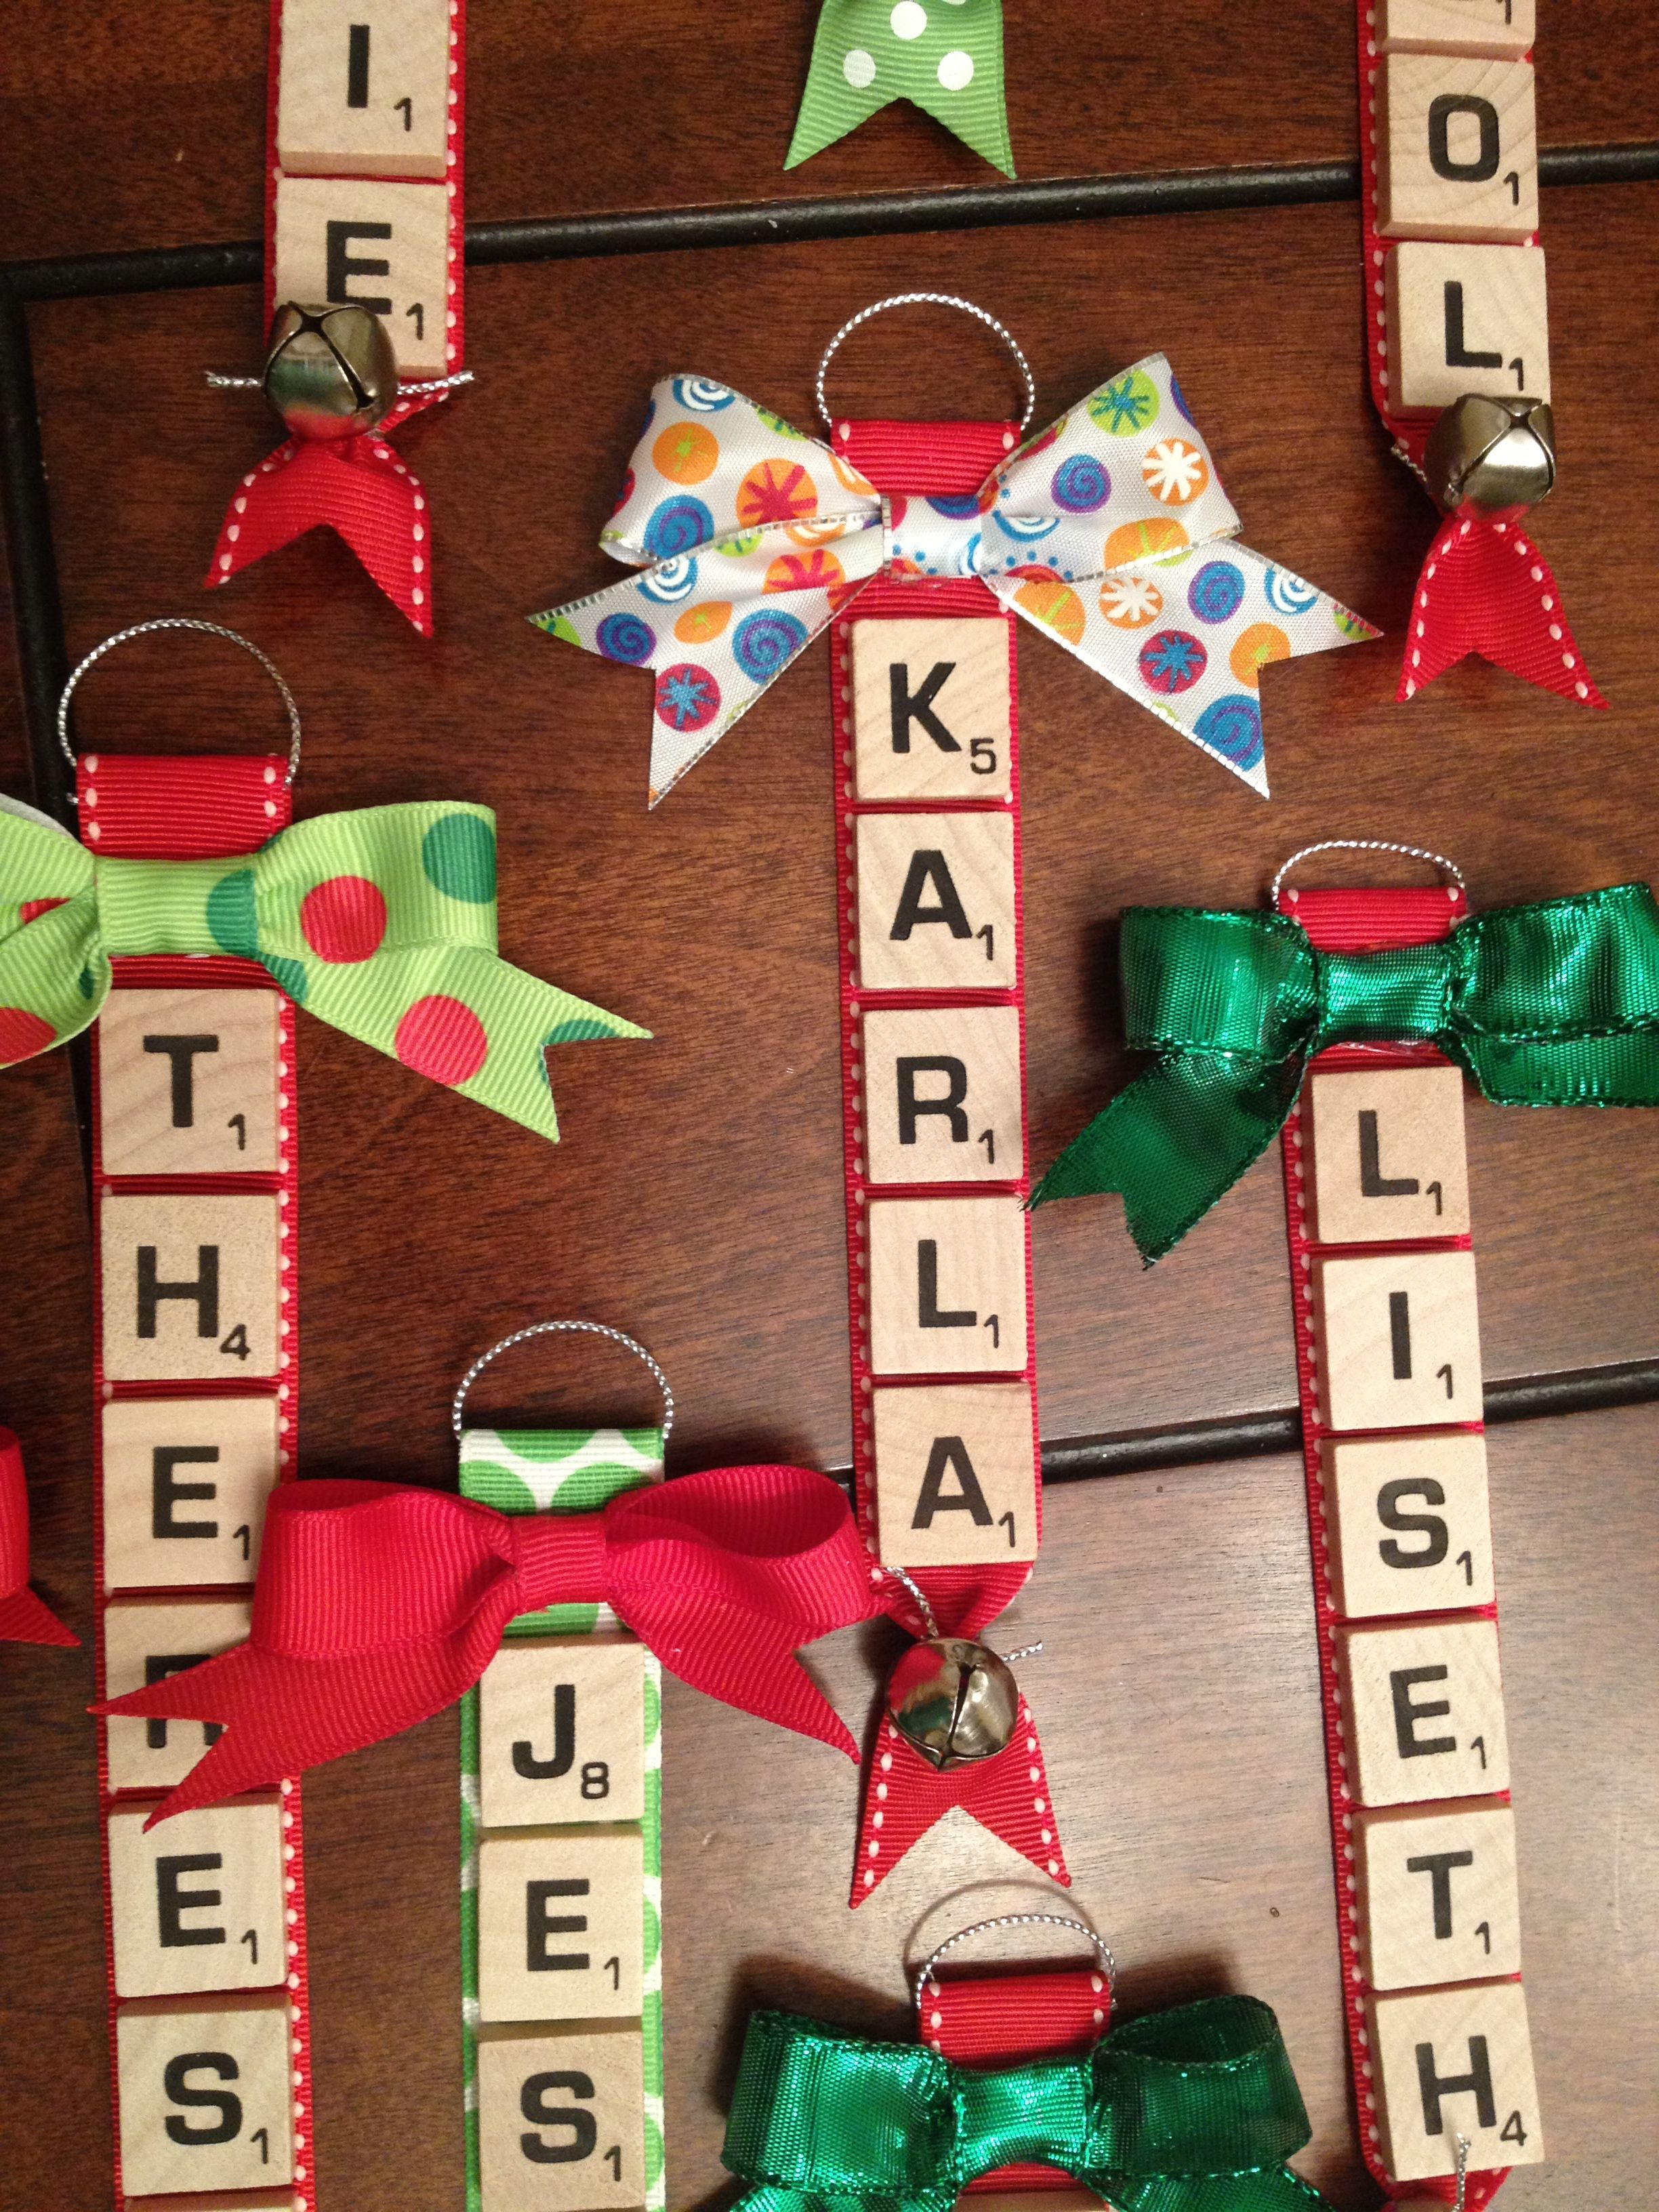 Tile Decorations Adorable Personalized Scrabble Tile Ornaments With Bells And Bows Inspiration Design